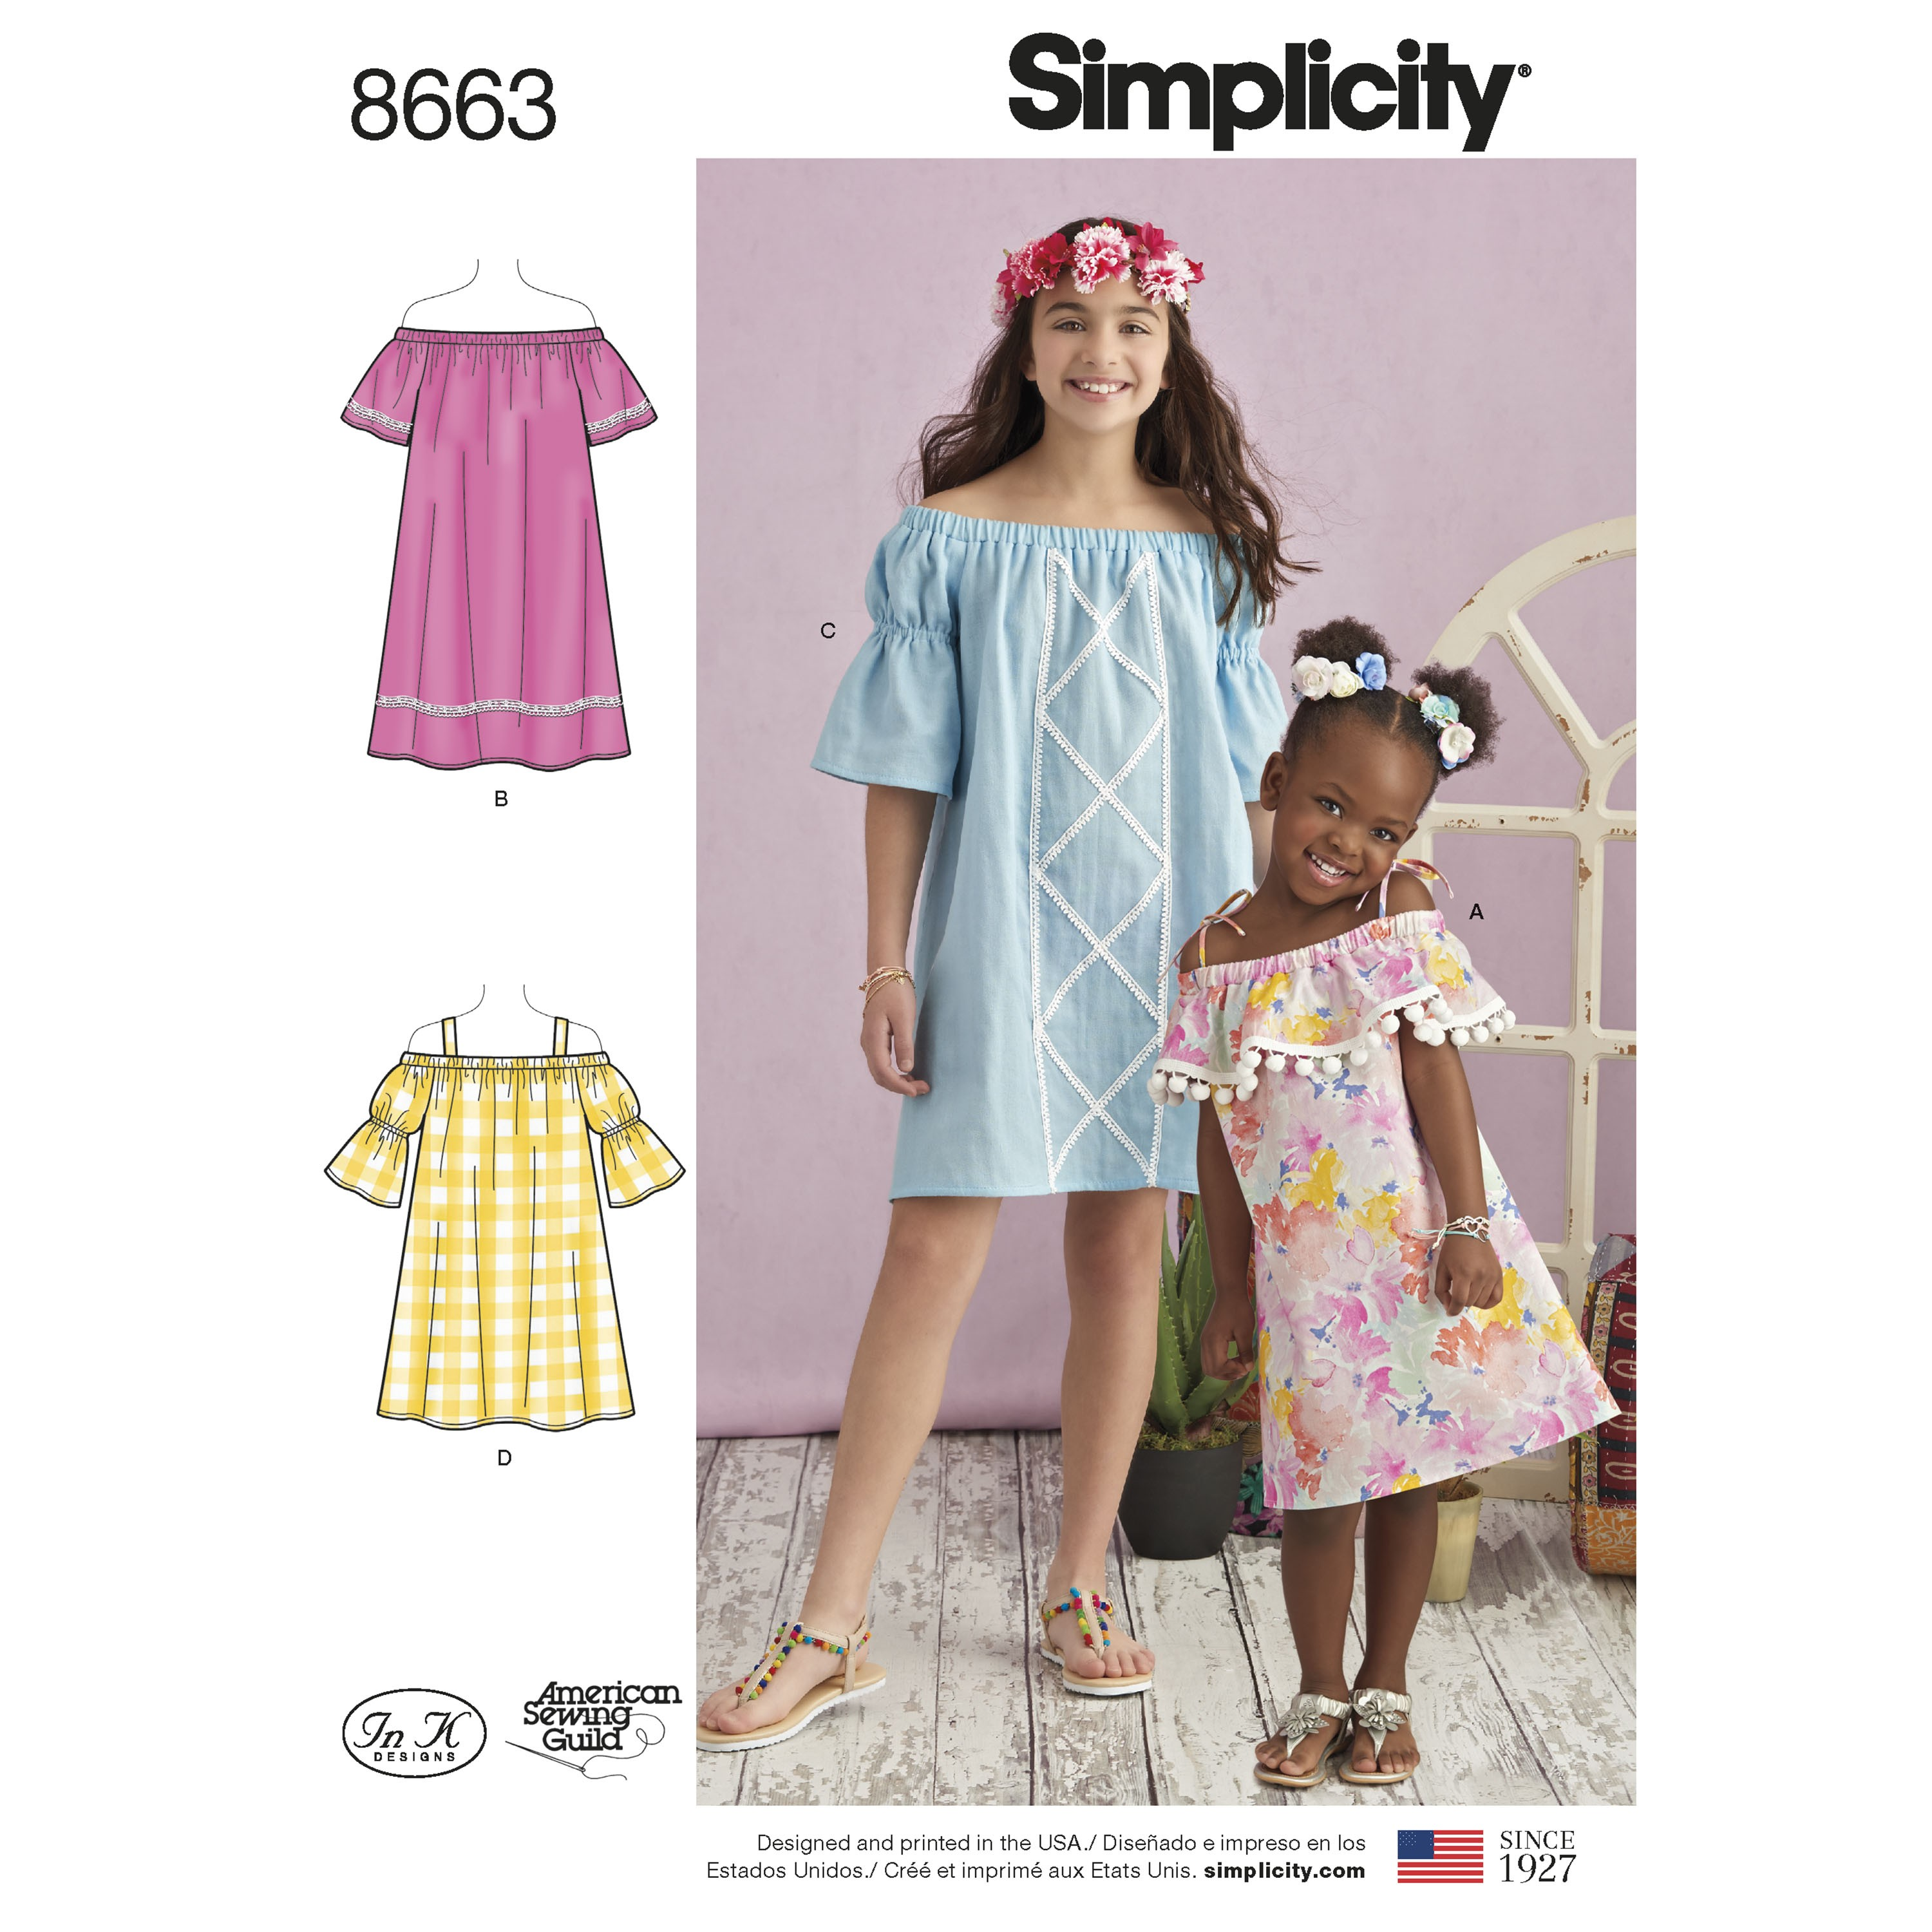 8542ec166a2f Simplicity Sewing Pattern 8663 Child's and Girls' Dress